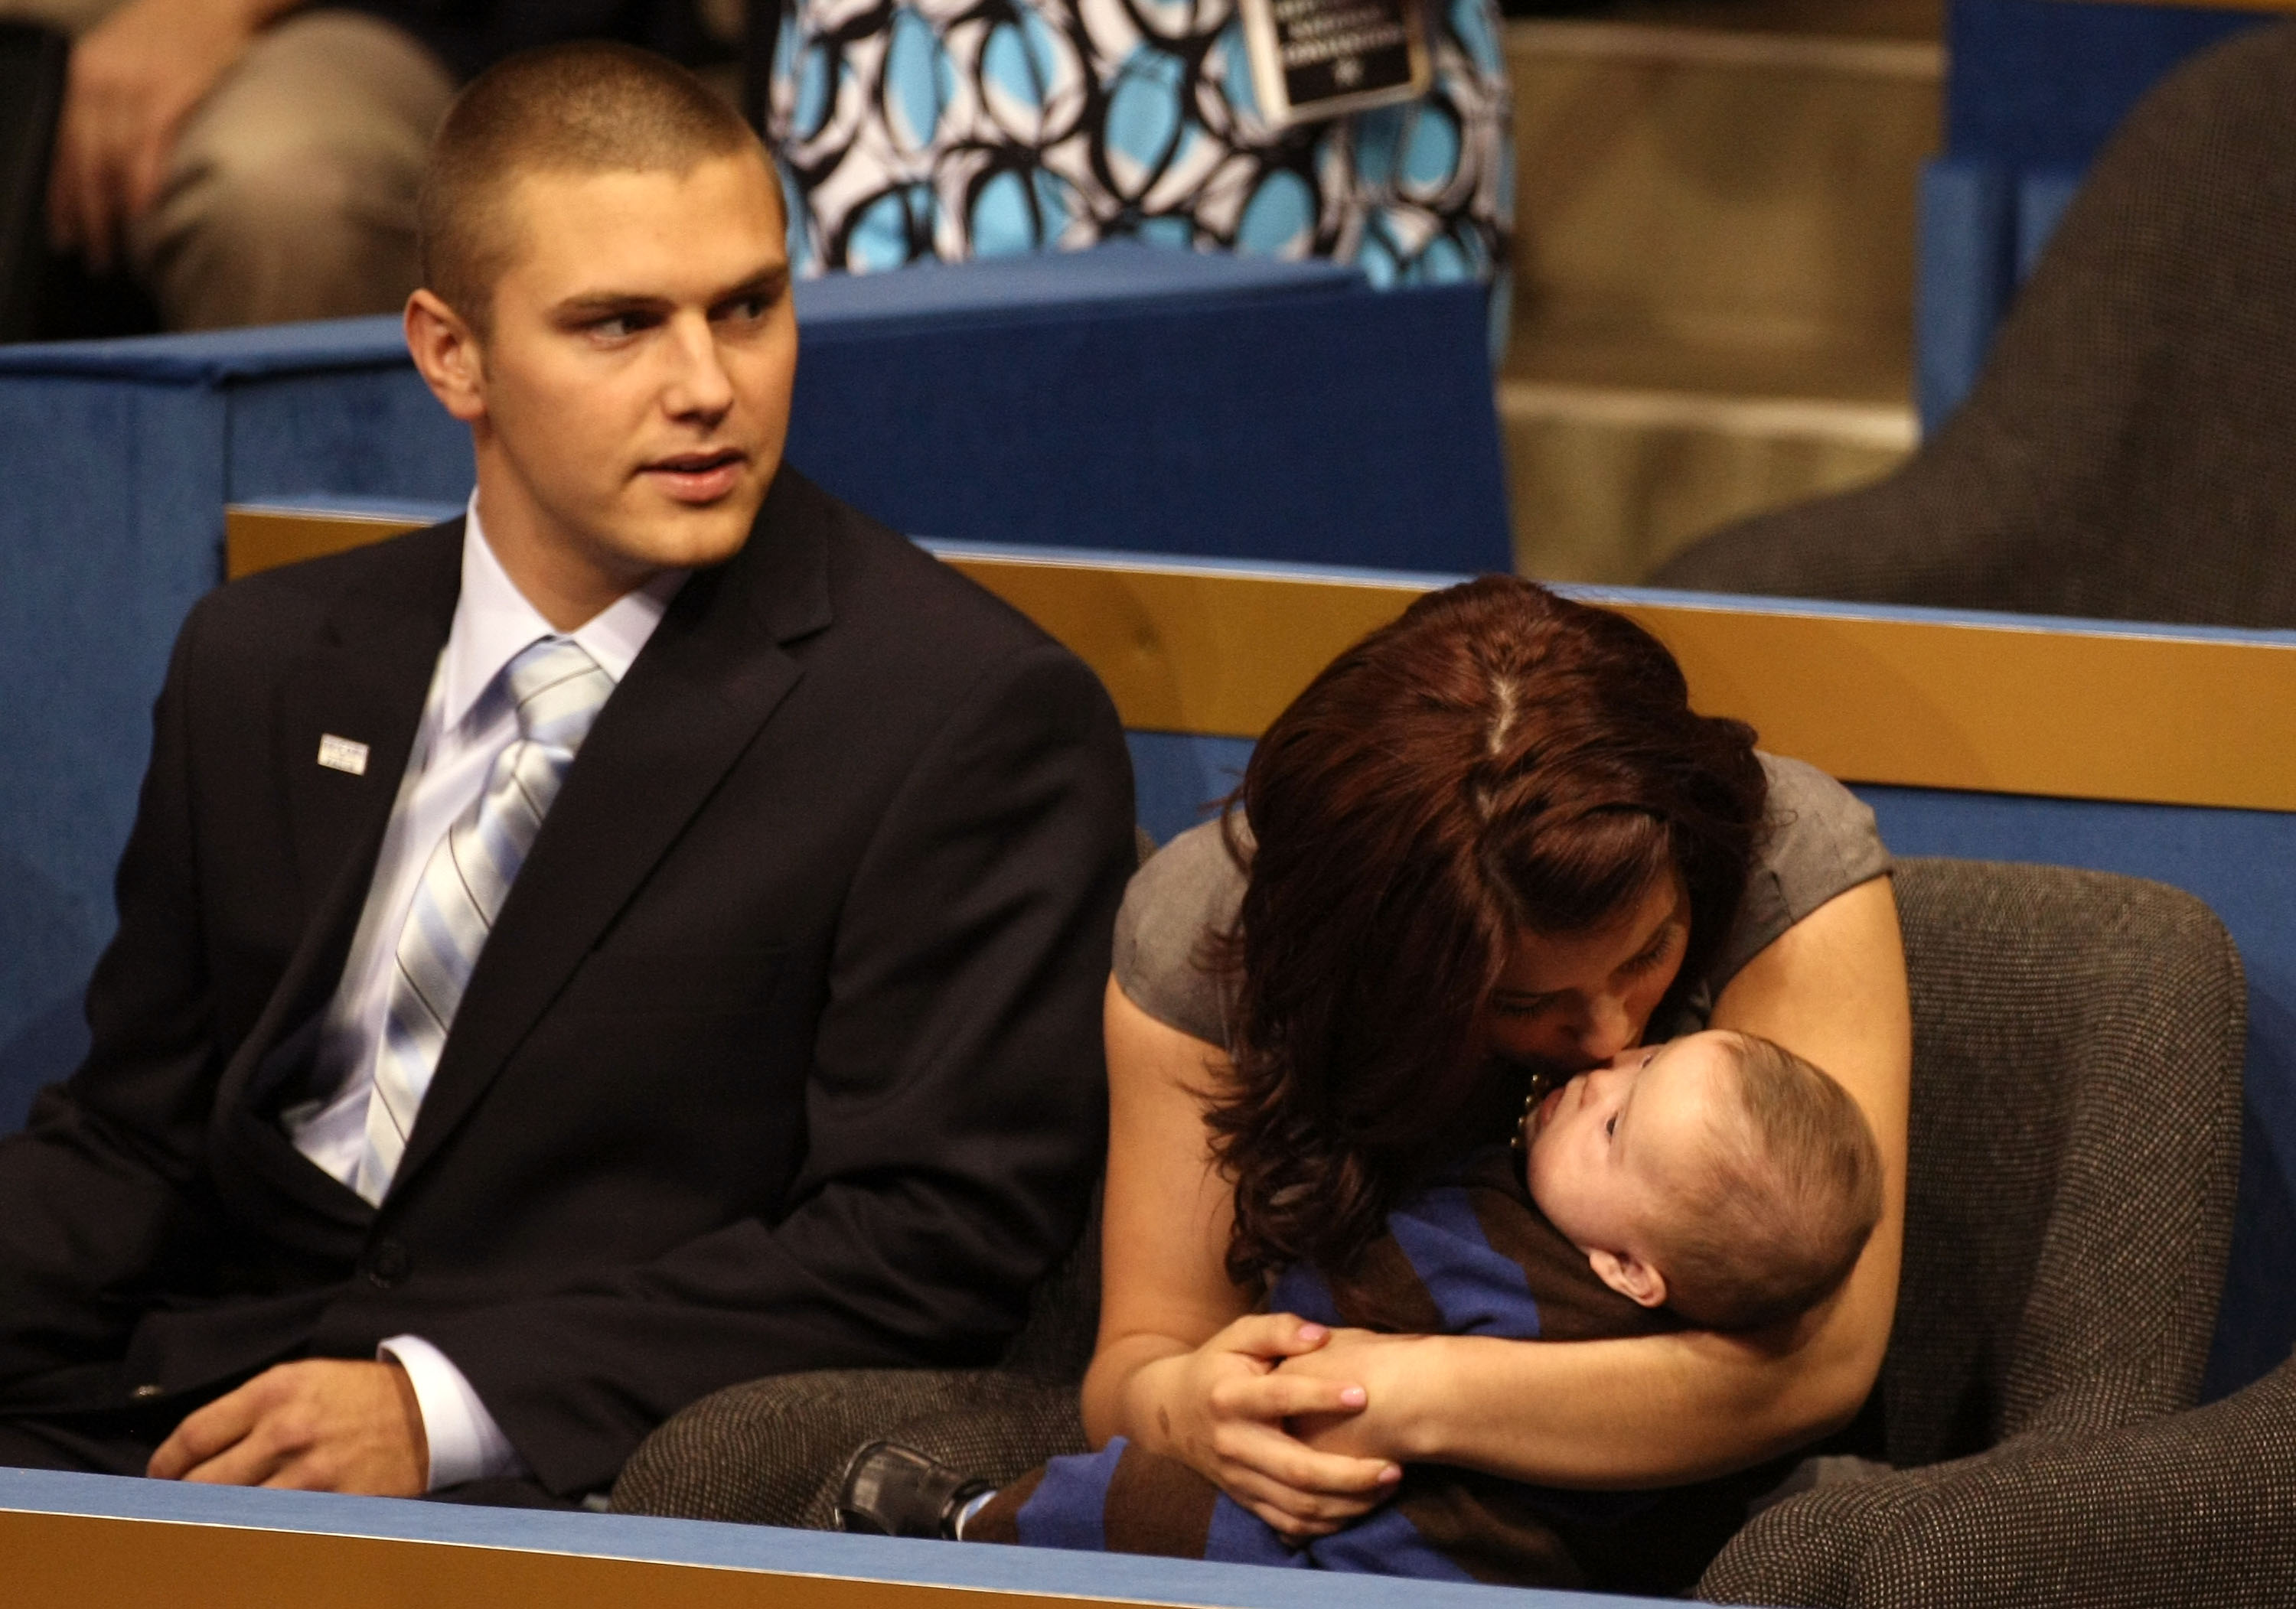 UPDATE: Sarah Palin's Husband in 'Very Serious' Accident